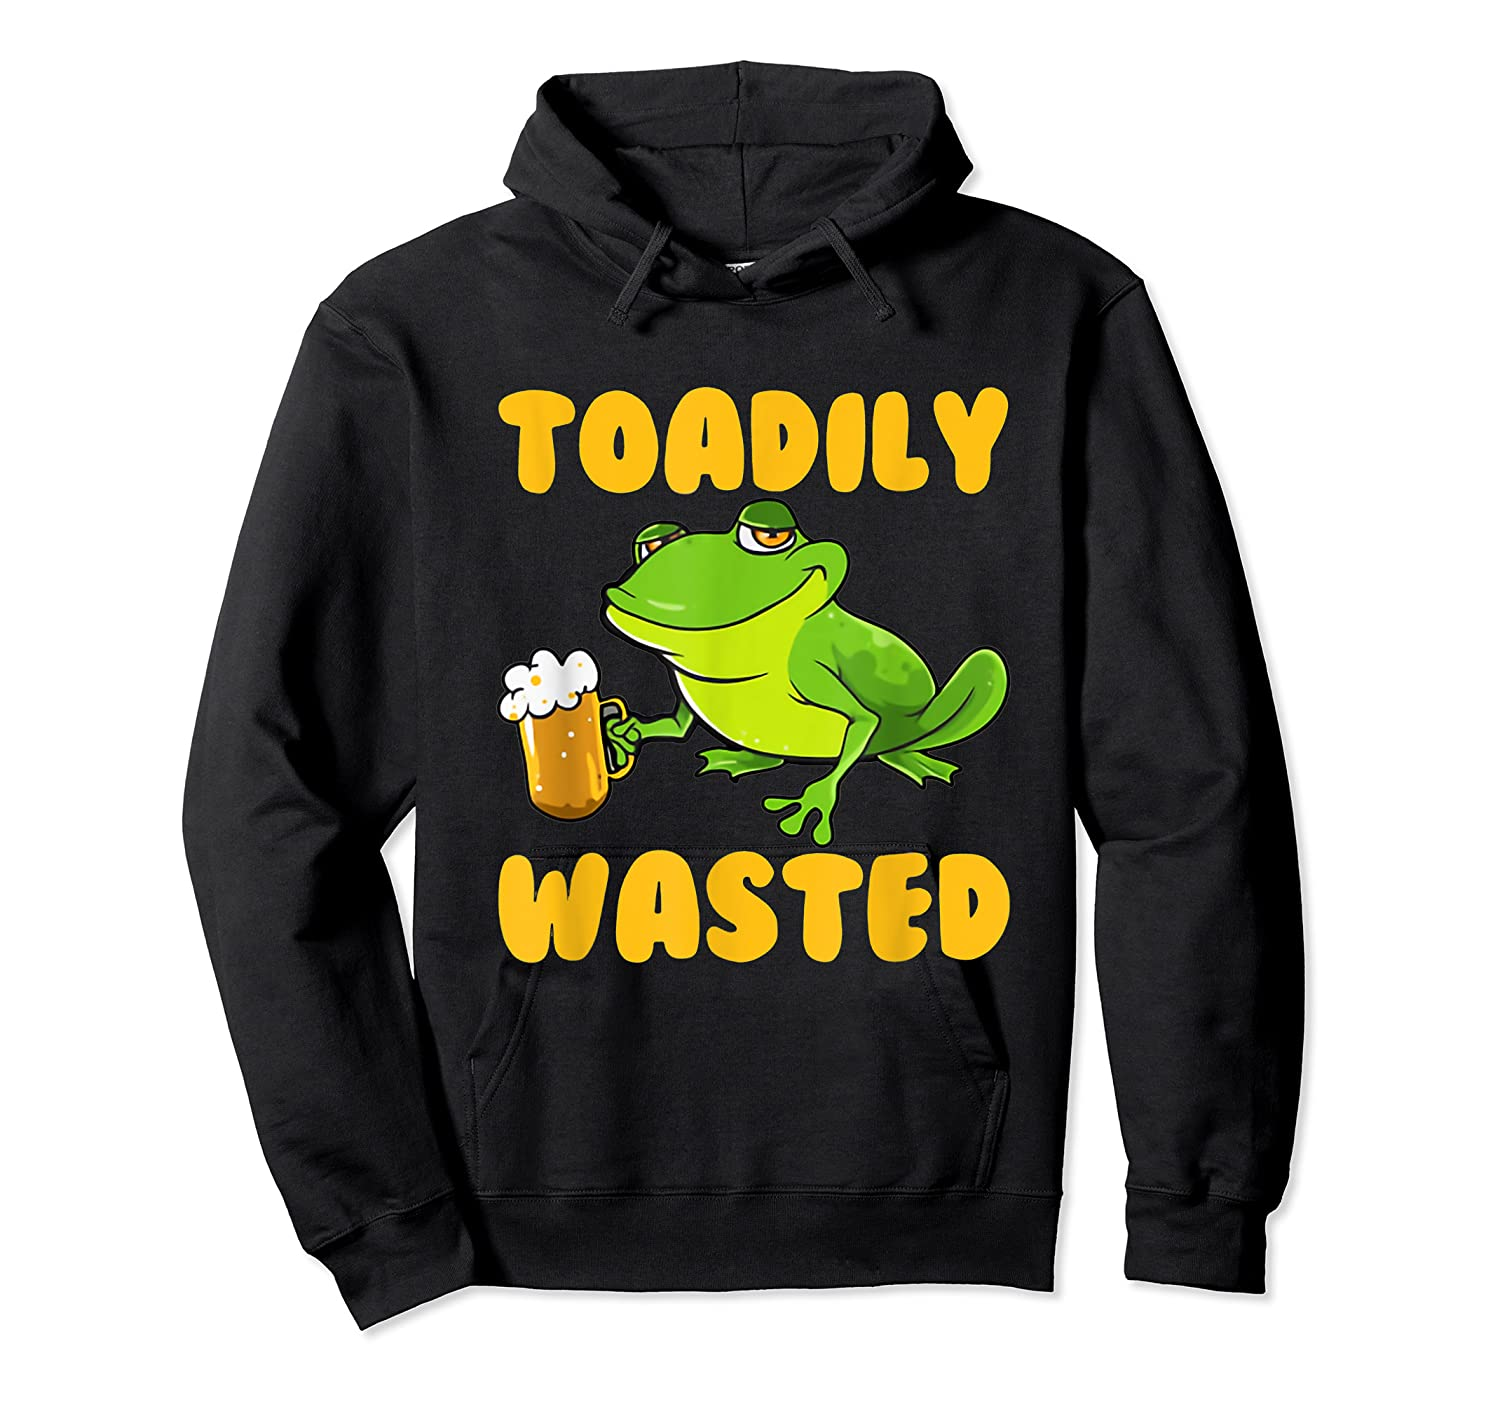 Funny Frog Drink Beer Toadily Wasted Beer Party Gift T Shirt Unisex Pullover Hoodie